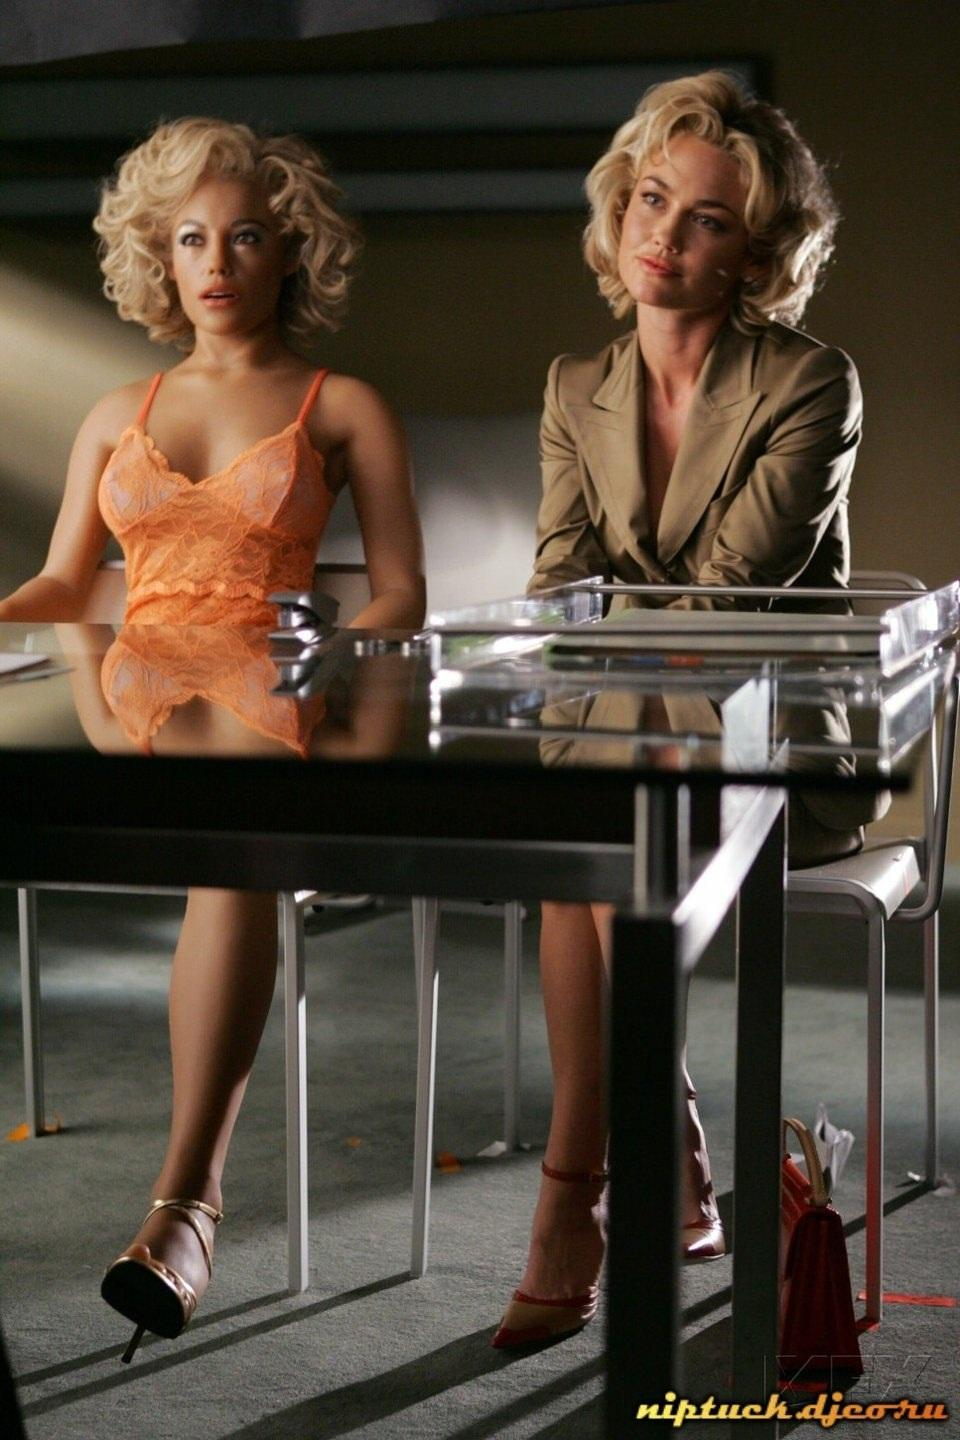 Kelly Carlson with Kimber Henry Real Doll sex doll in Nip/Tuck